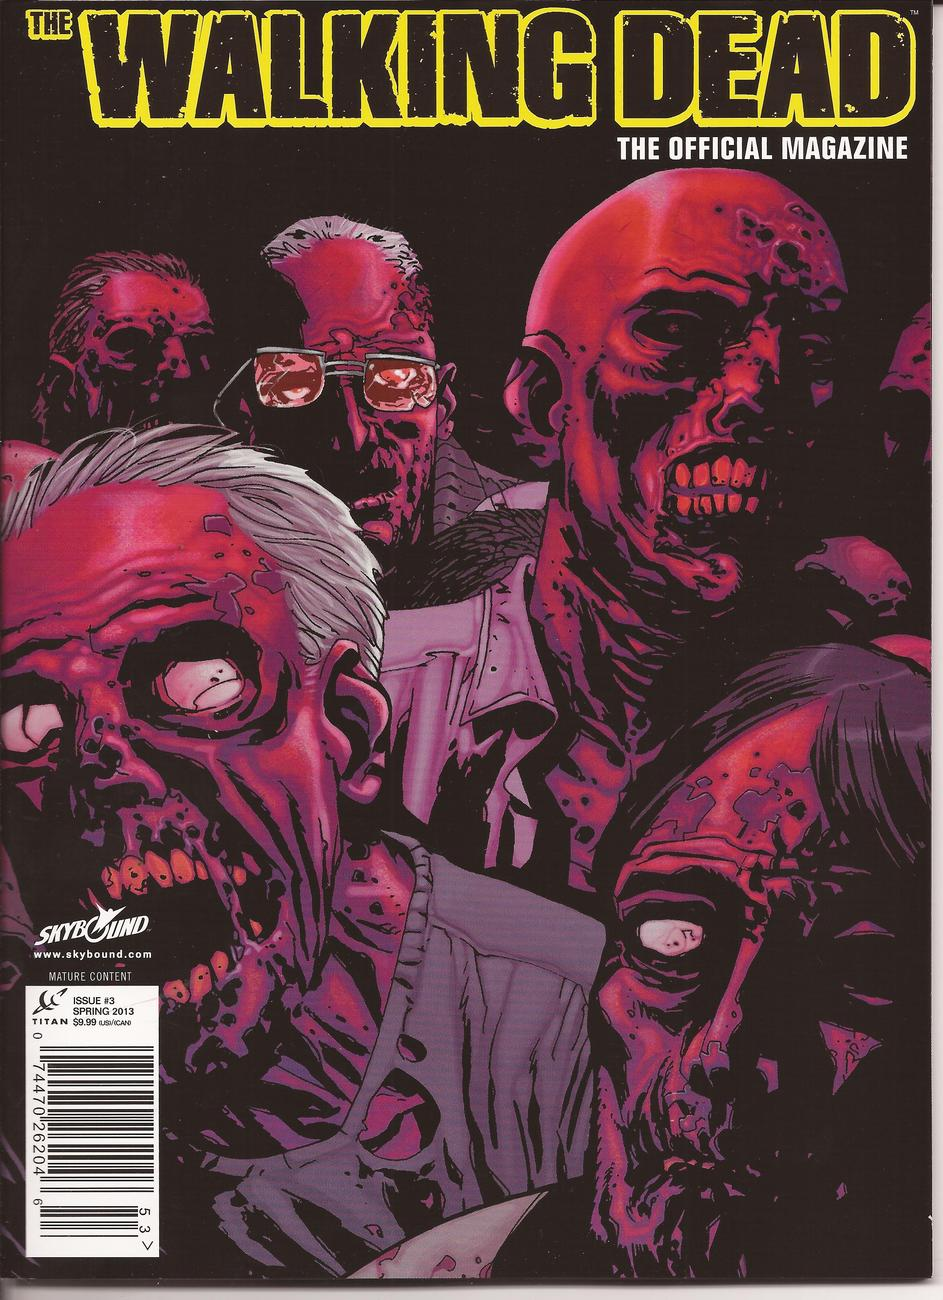 Walking Dead Magazine #3 Variant & Newstand Editions Dixon Brothers R Kirkman